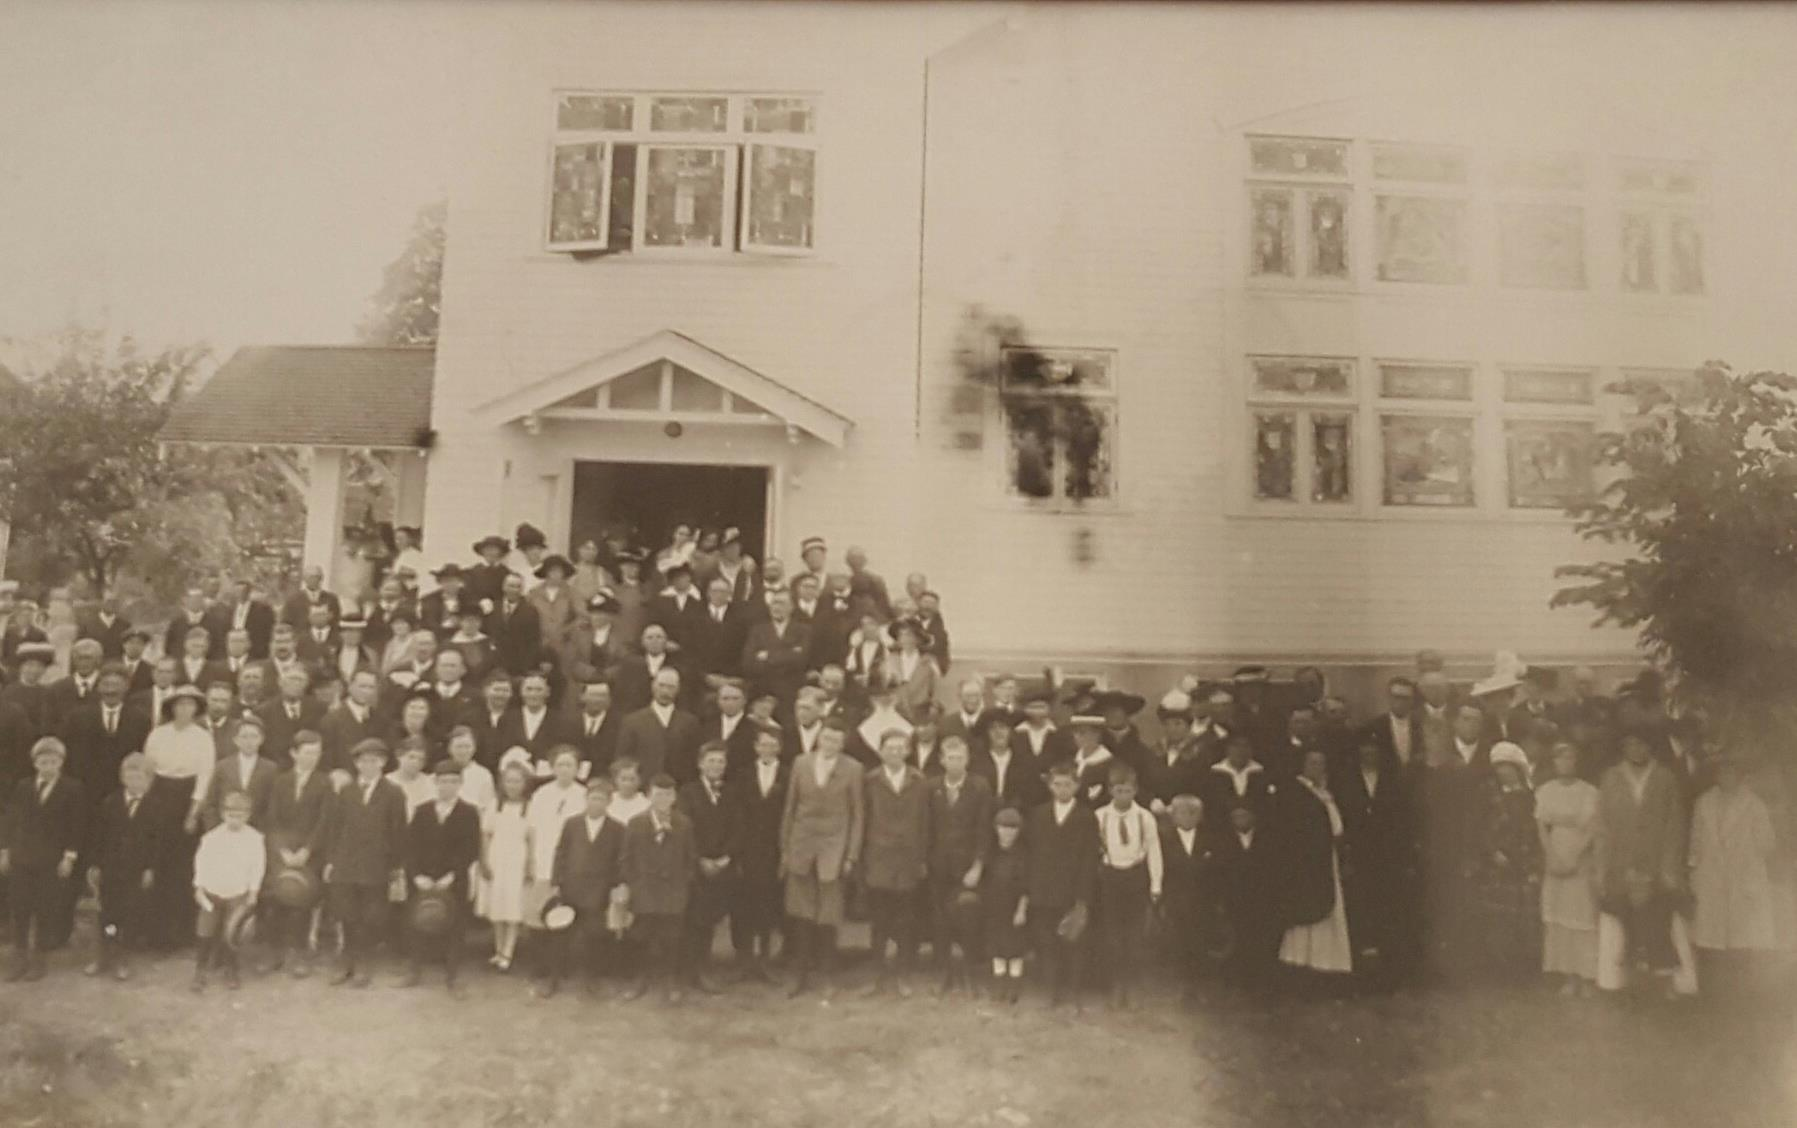 Building dedication in 1915.